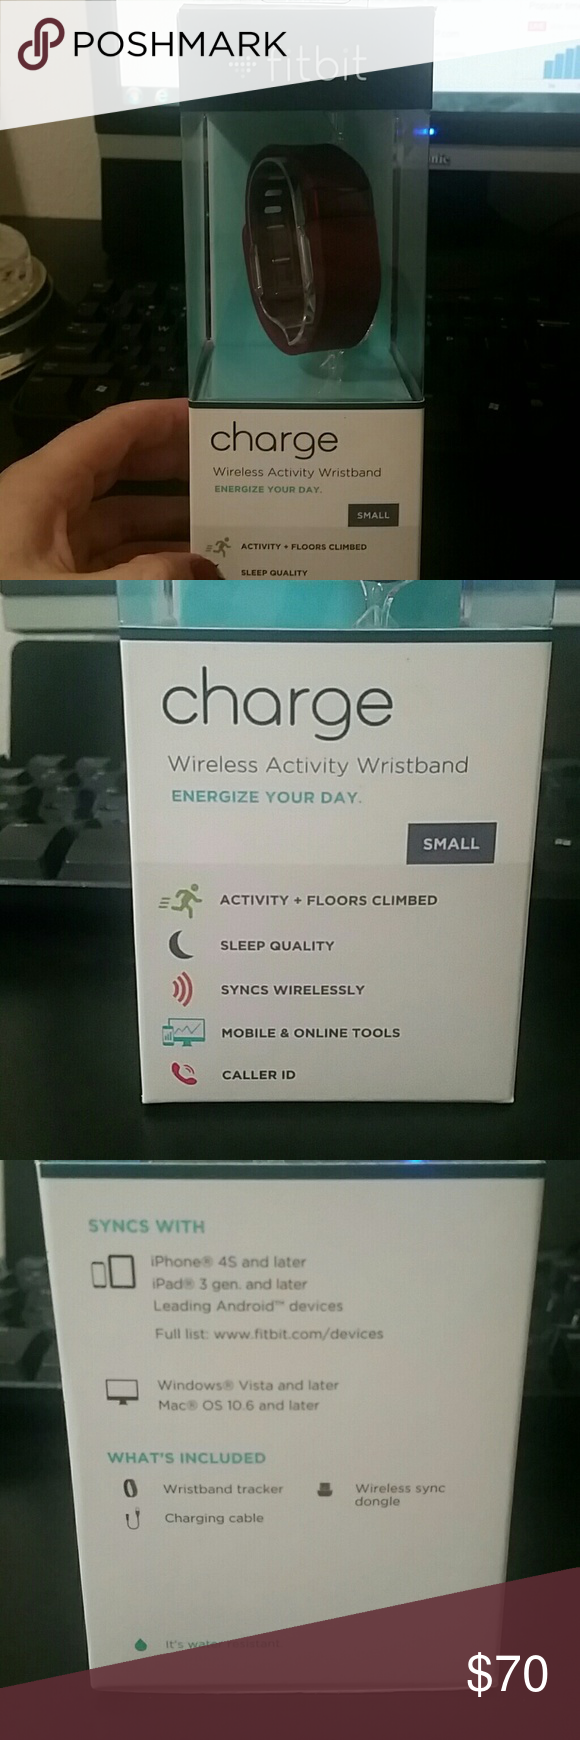 Fitbit Charge Maroon Fitbit New Fitbit Accessories Watches Activity Wristband Fitbit Accessories Latest Ipad